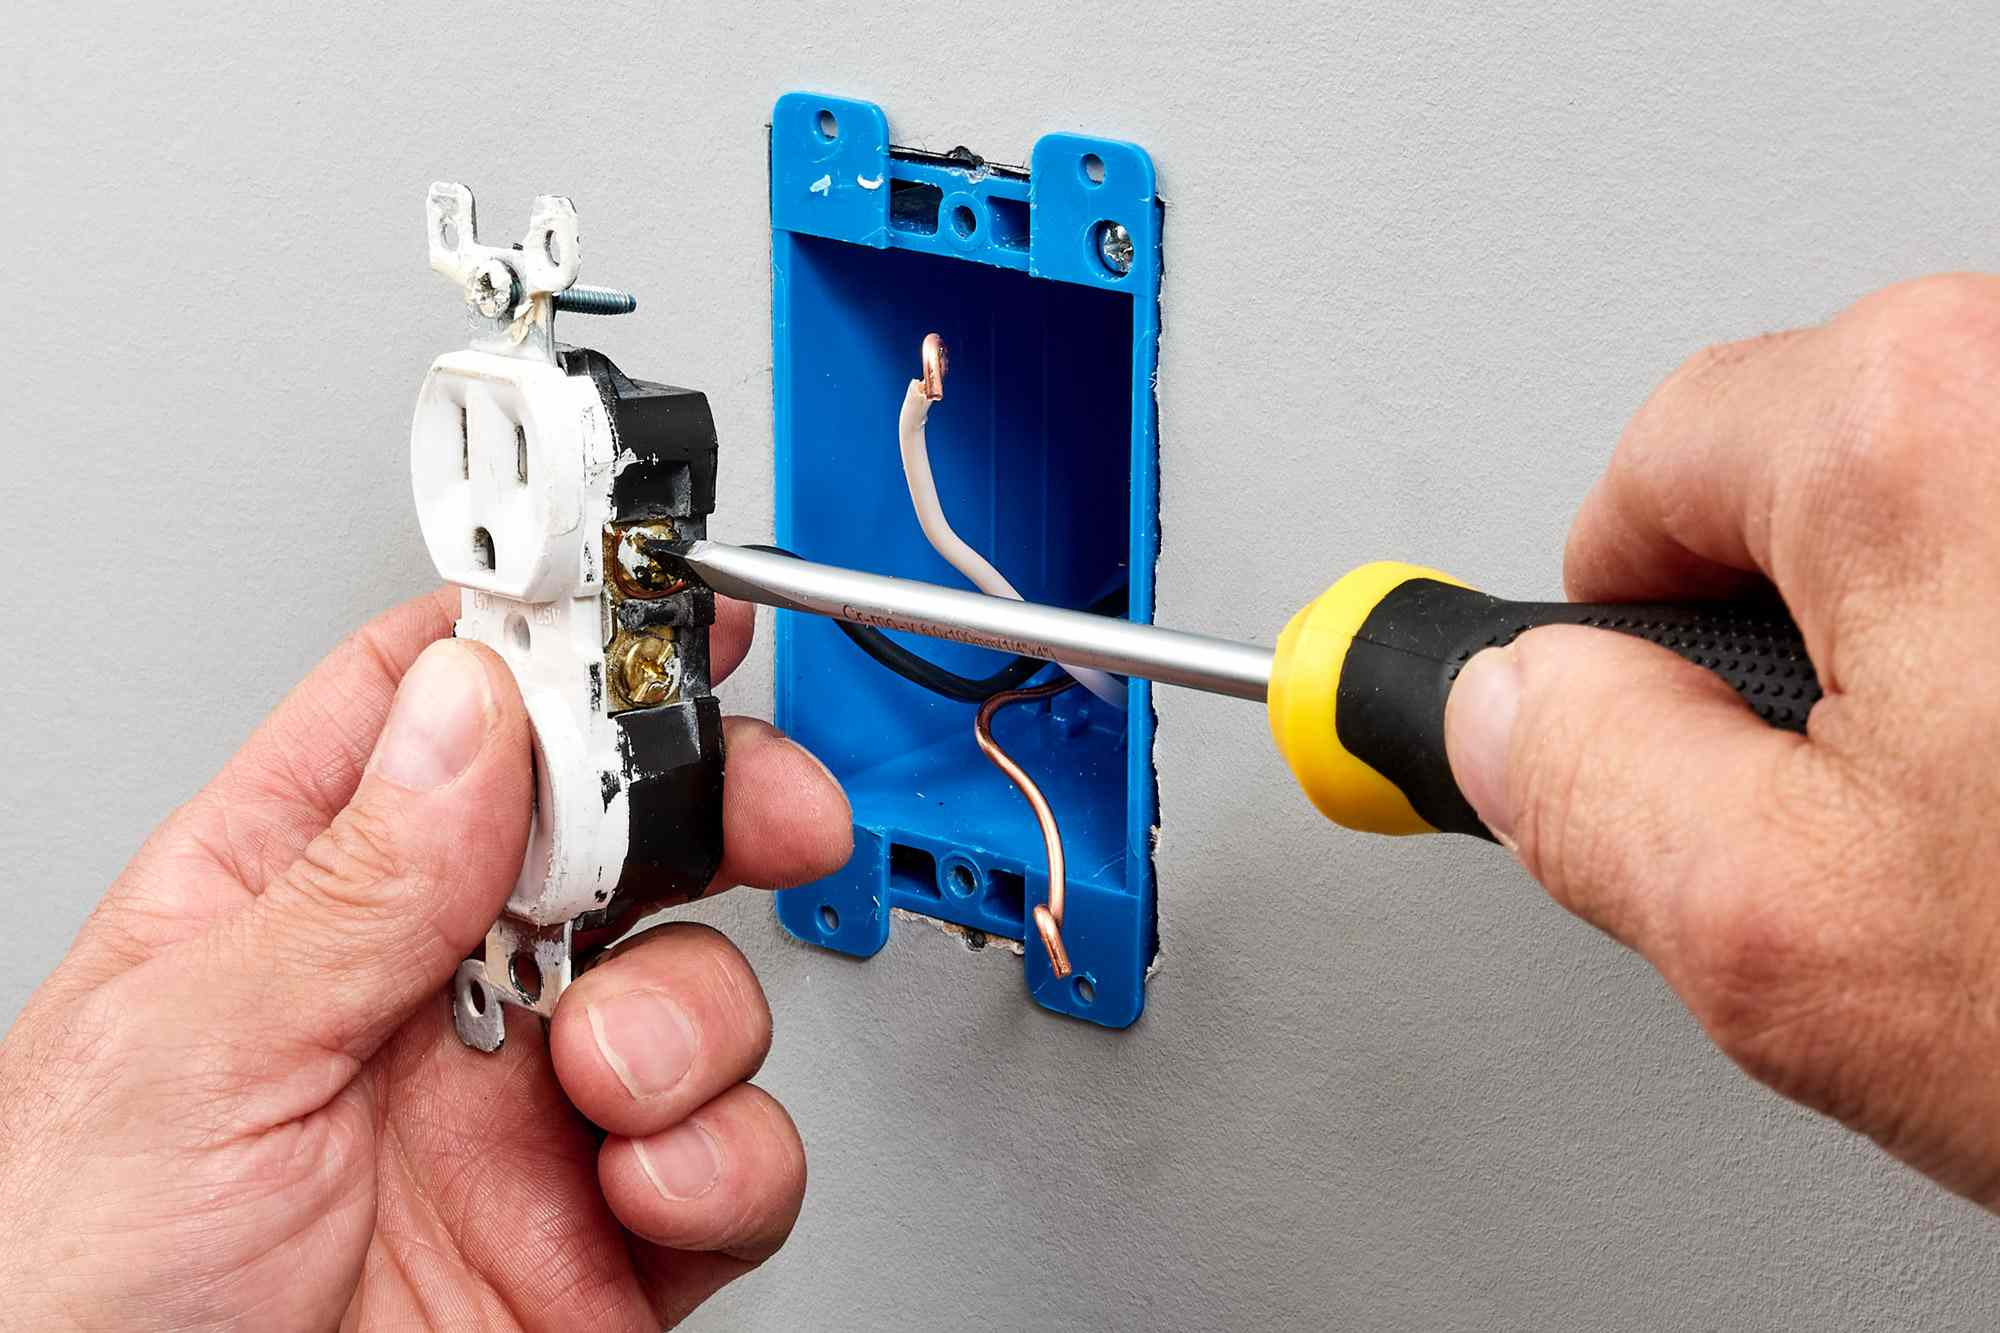 Screw terminals loosened on receptacle for removal